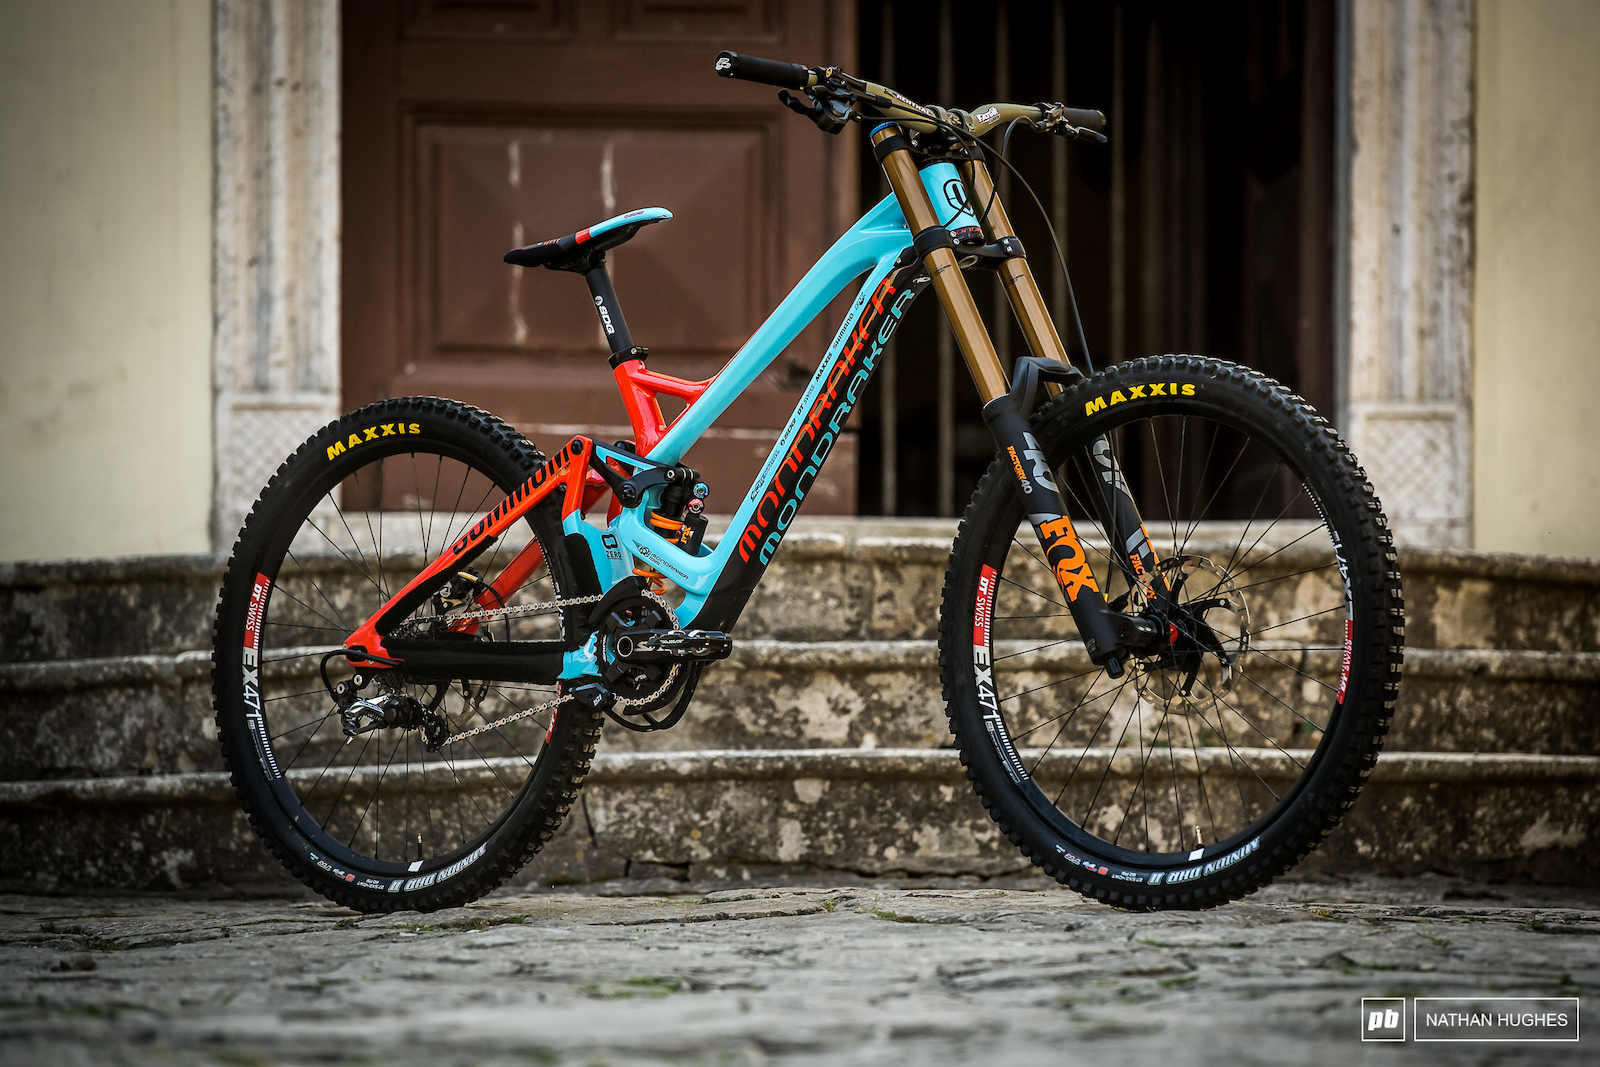 Mondraker Summum Brook Macdonald